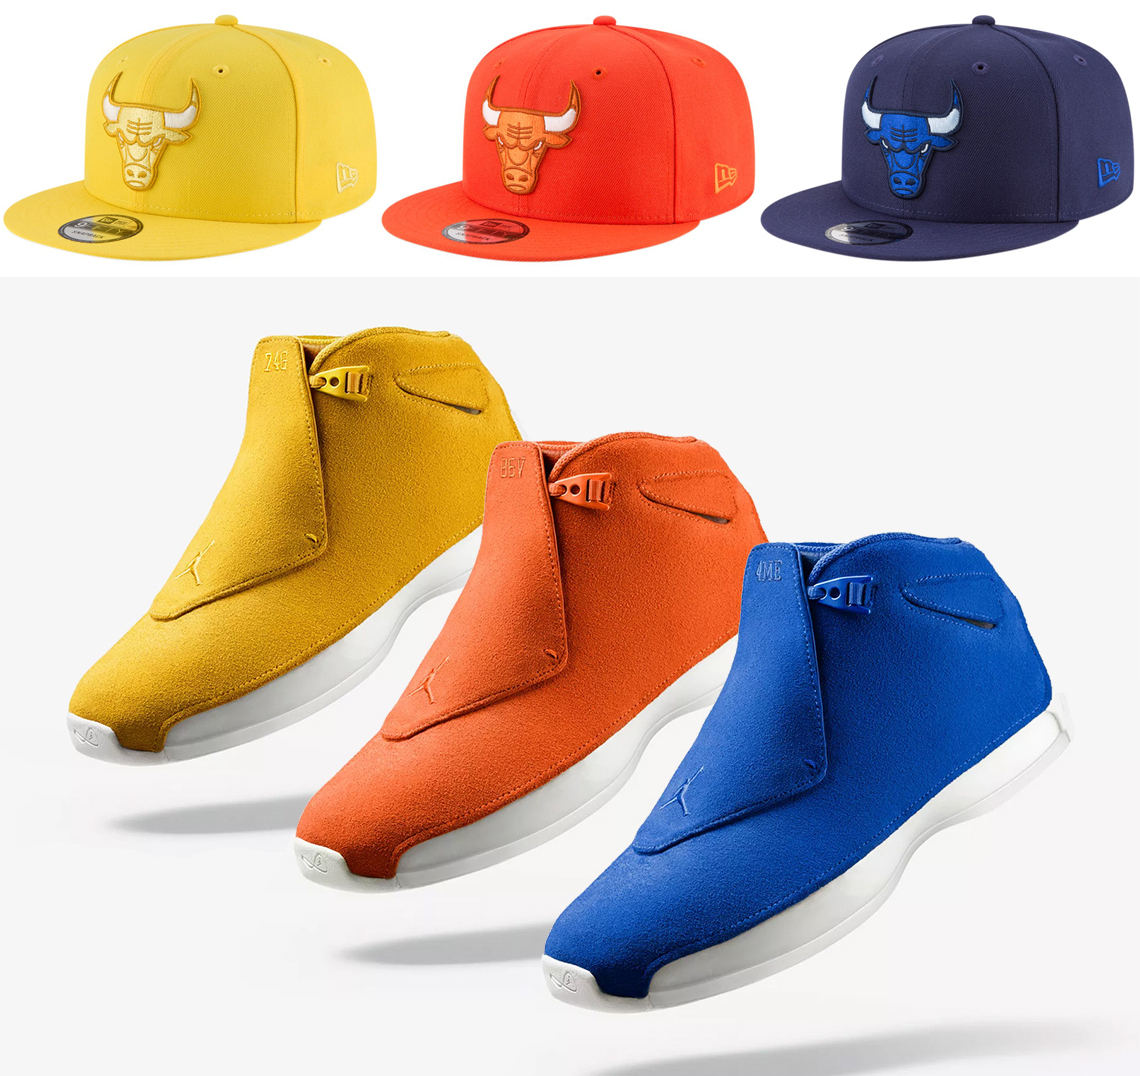 jordan-18-suede-hats-to-match